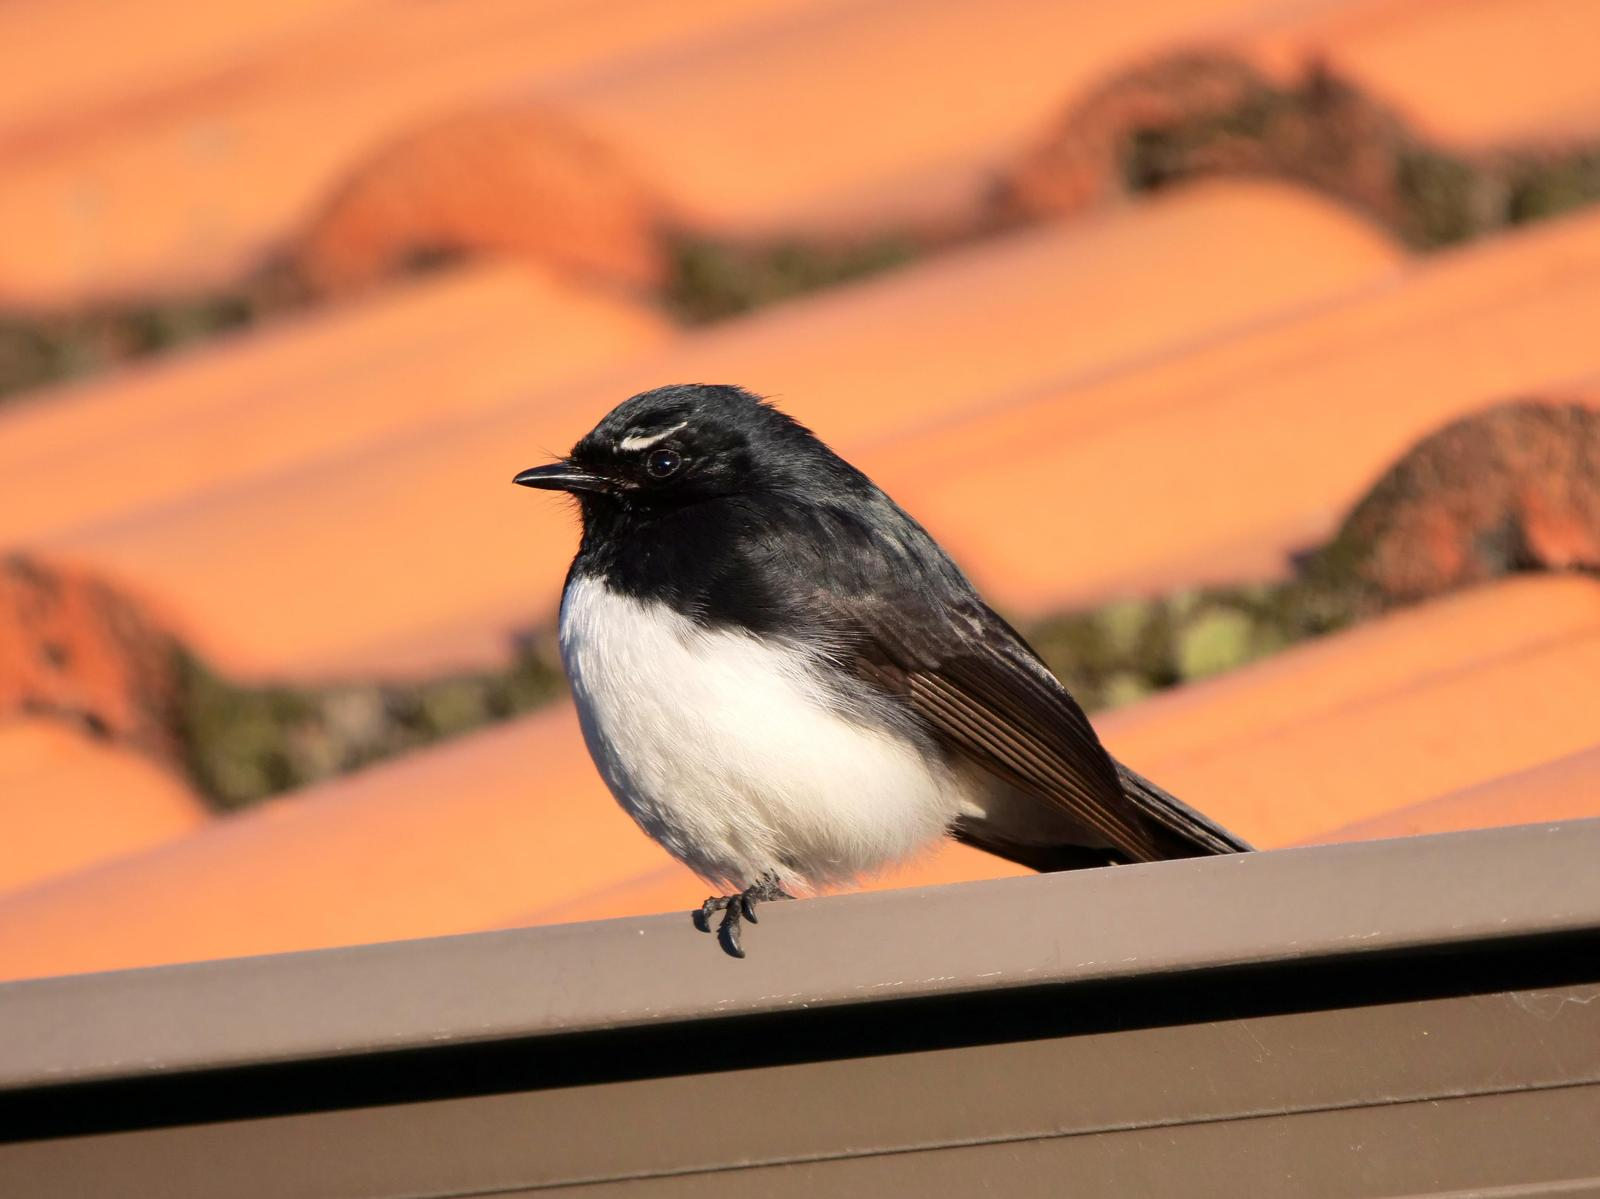 Willie-wagtail Photo by Peter Lowe